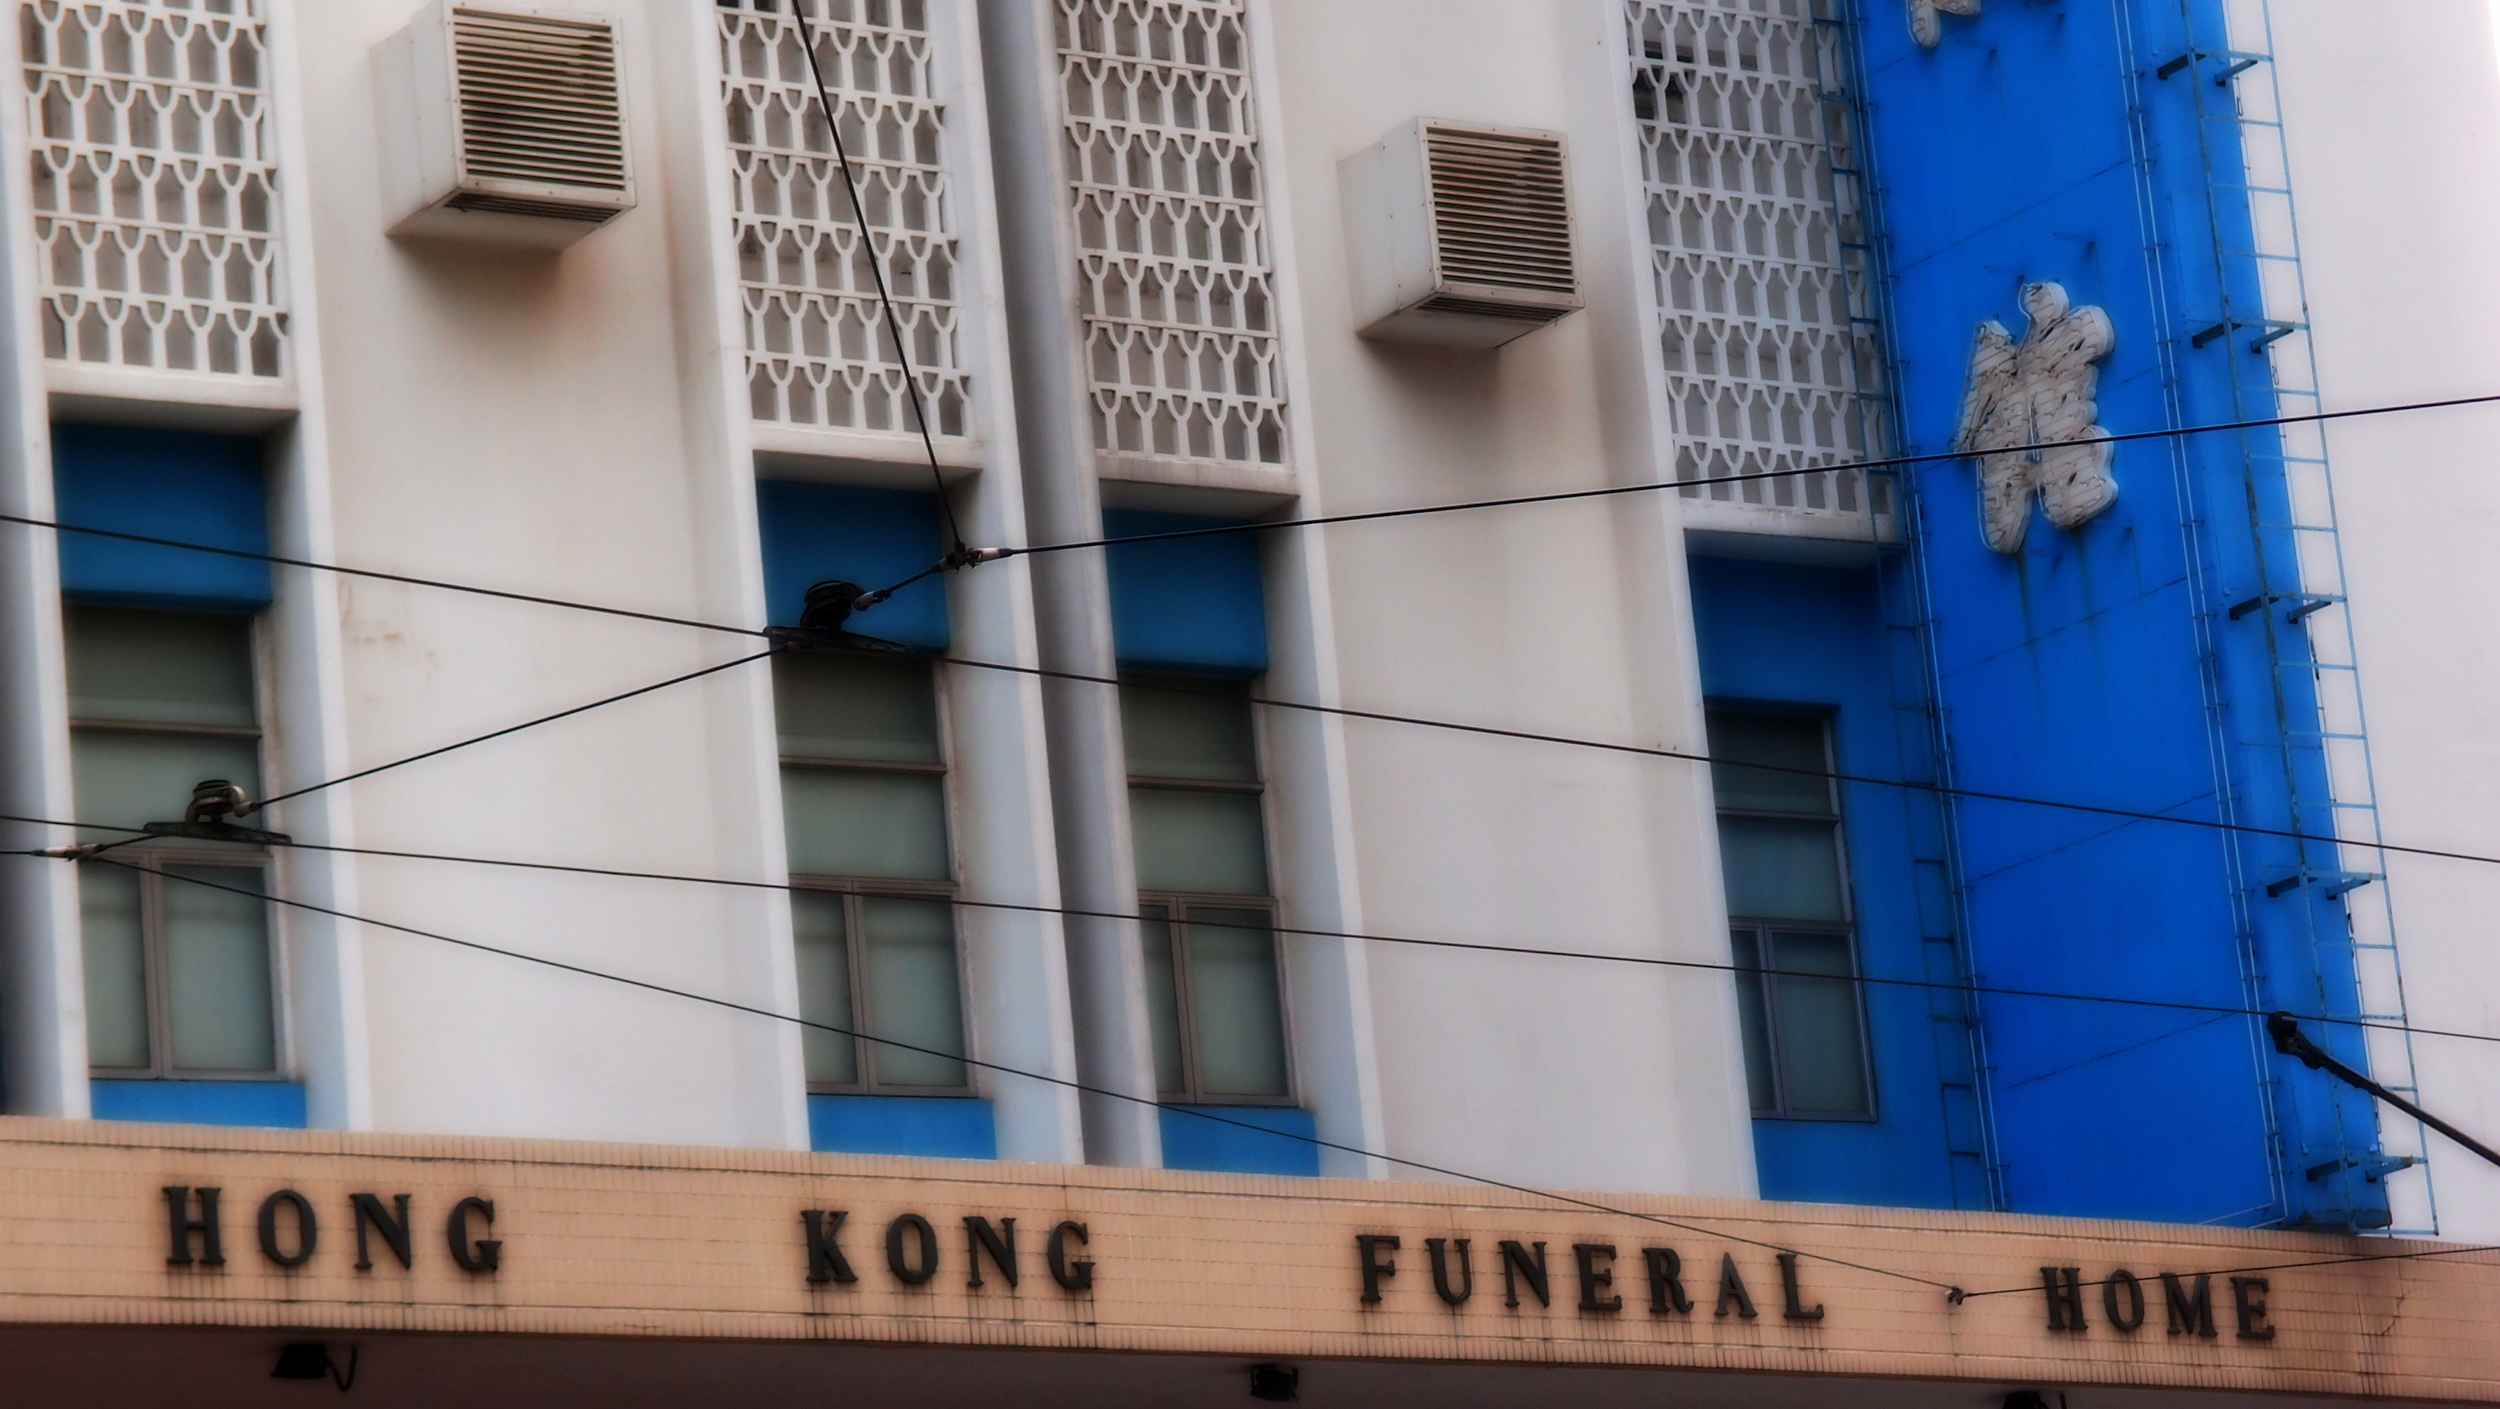 The Hong Kong Funeral Home